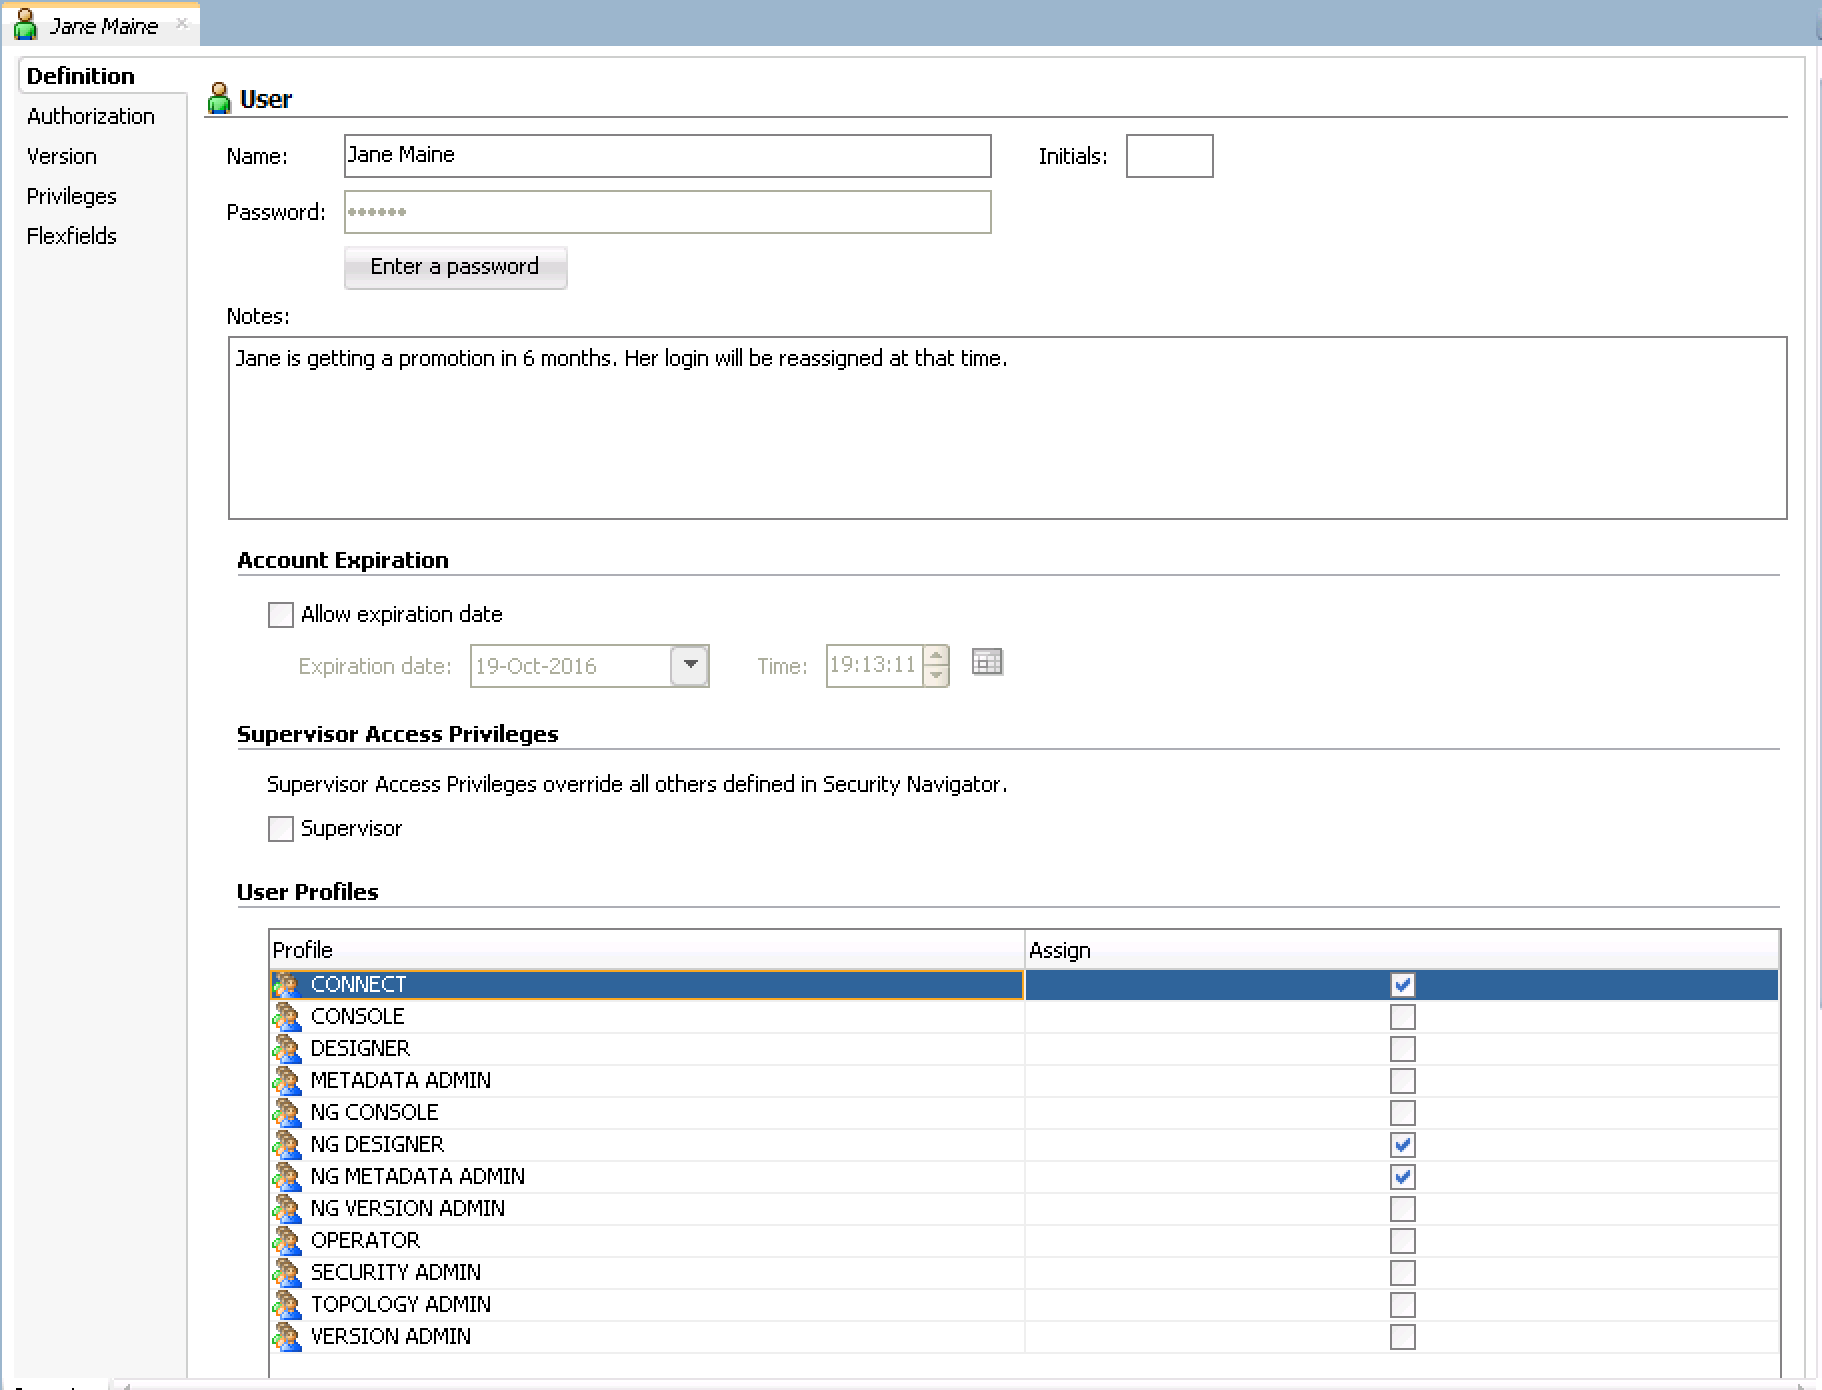 Creating Security Profiles in ODI 12c